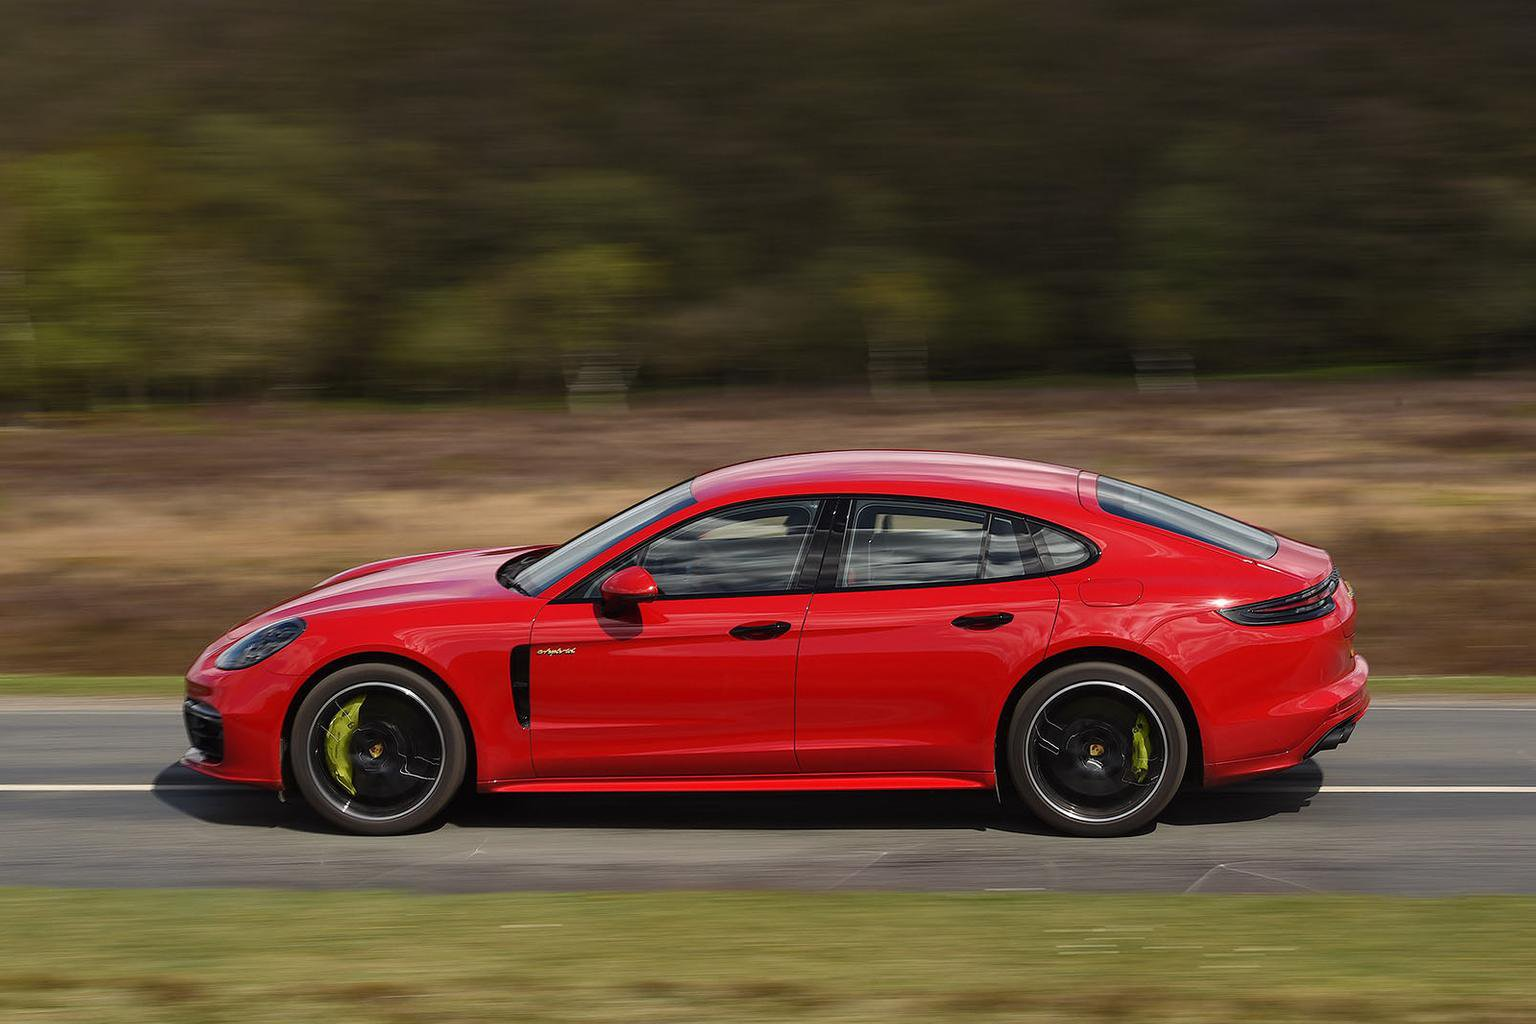 2018 Porsche Panamera Turbo S E-Hybrid review – verdict, price, specs and release date